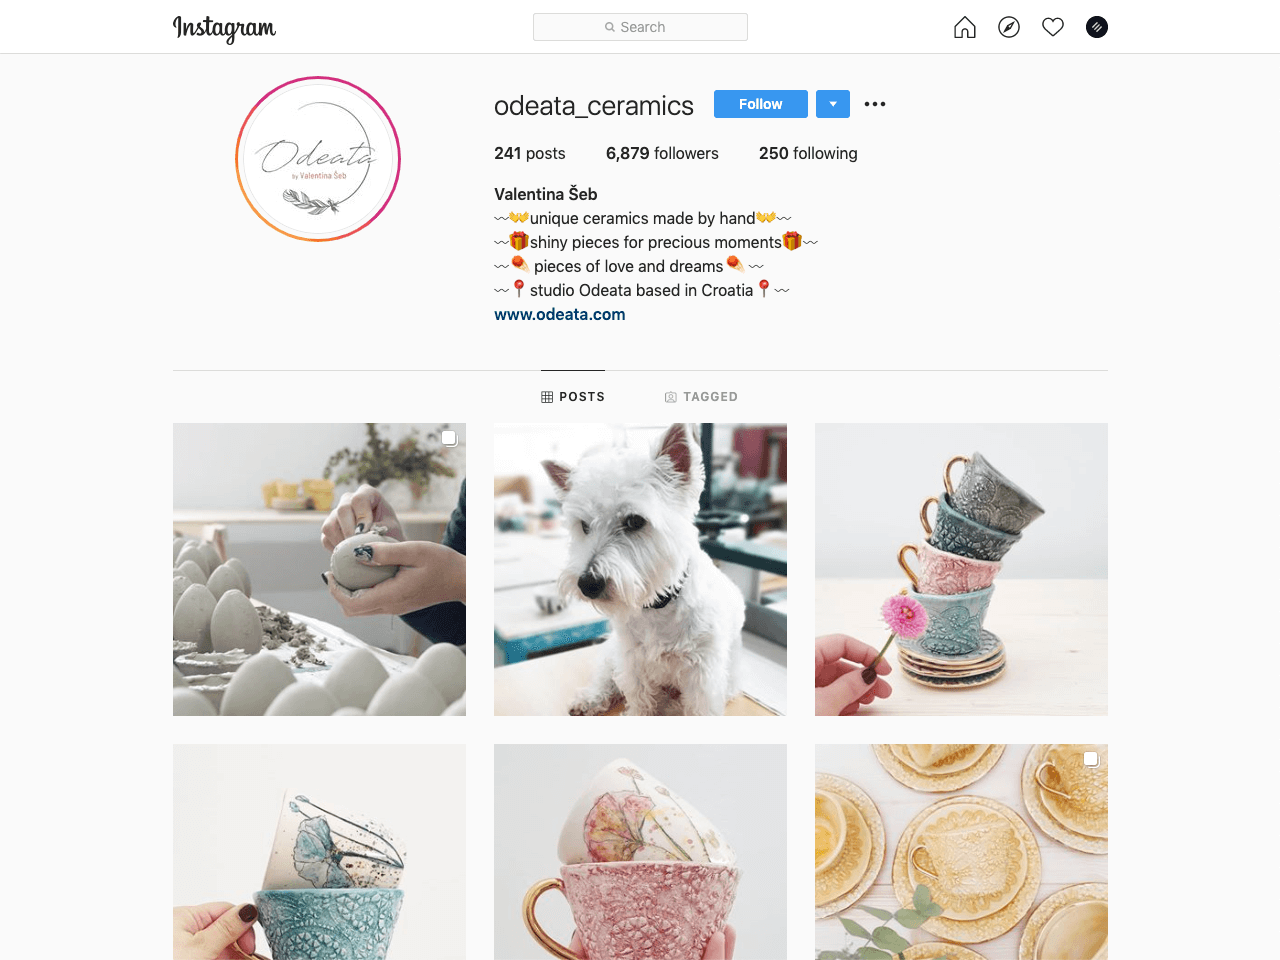 Perfectly designed Instagram feed by a handmade ceramics shop